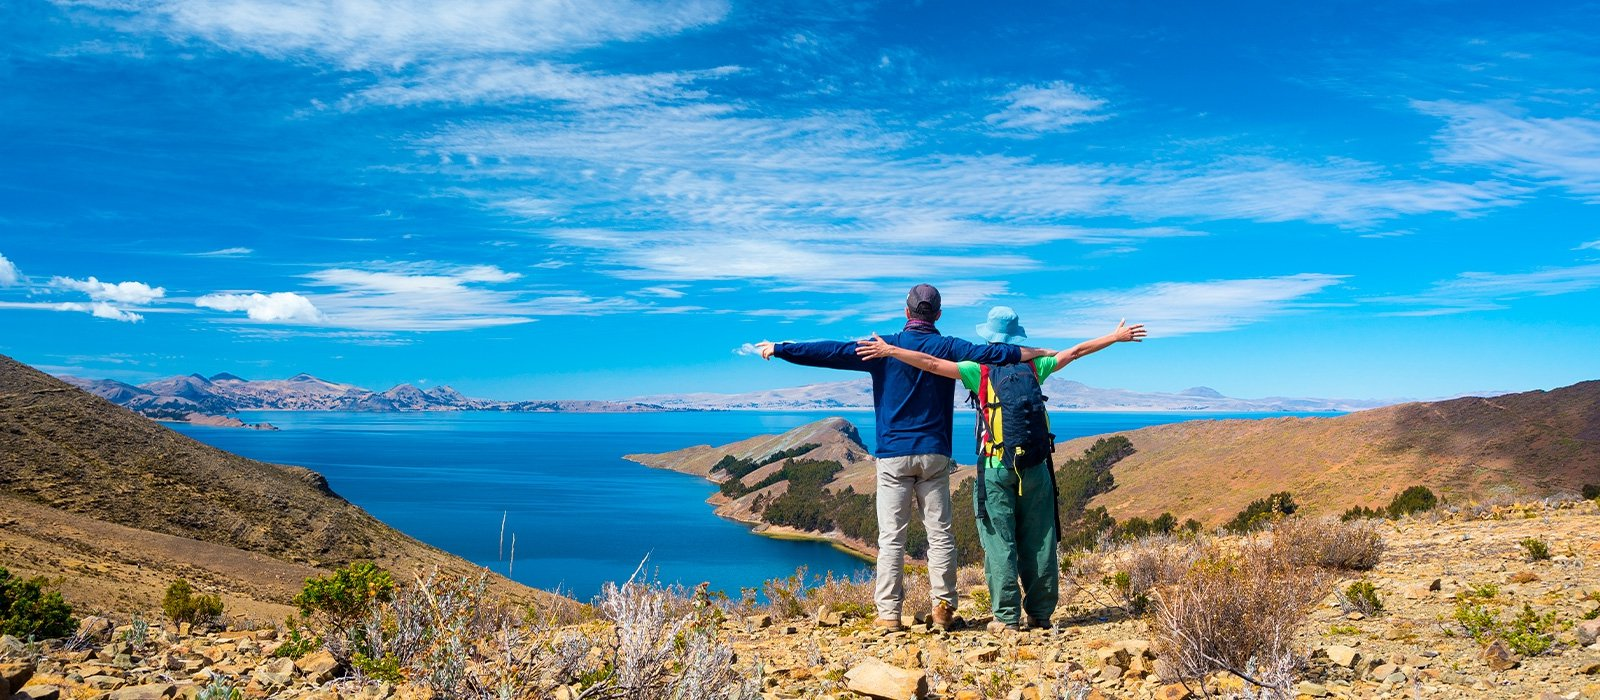 Highlights from La Paz to Puno